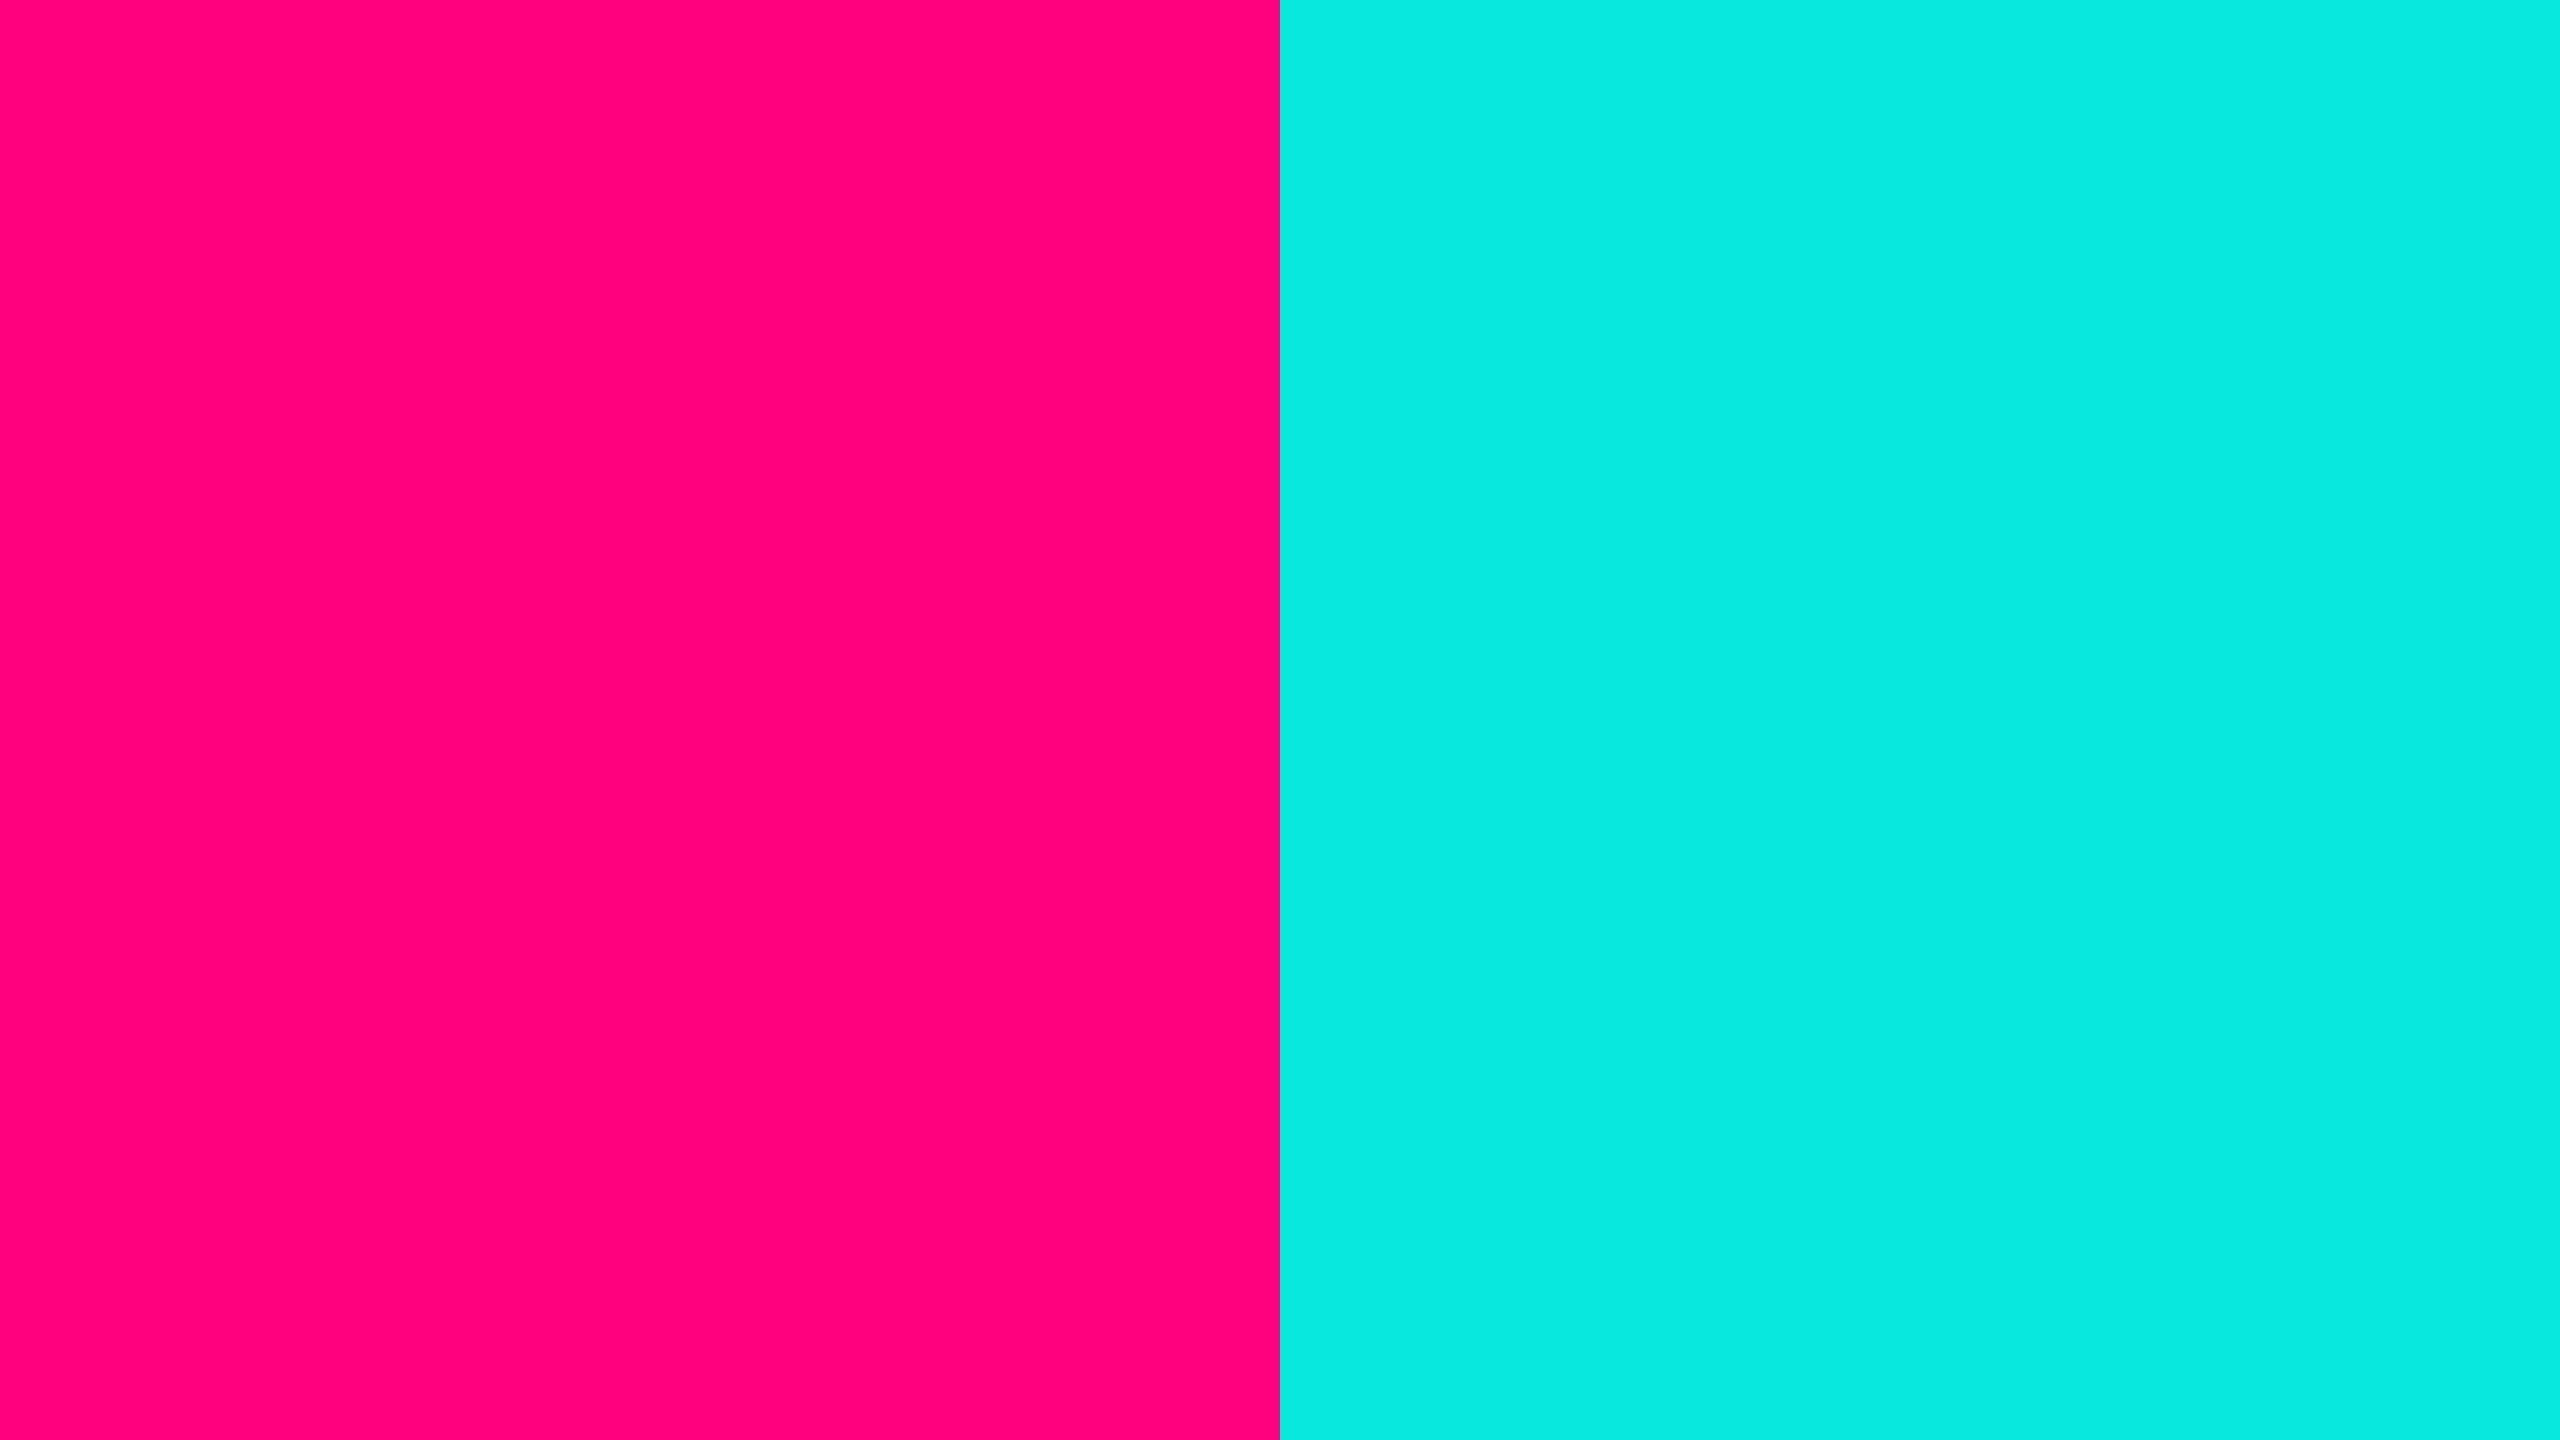 image turquoise and pink neon wallpaper pc android iphone